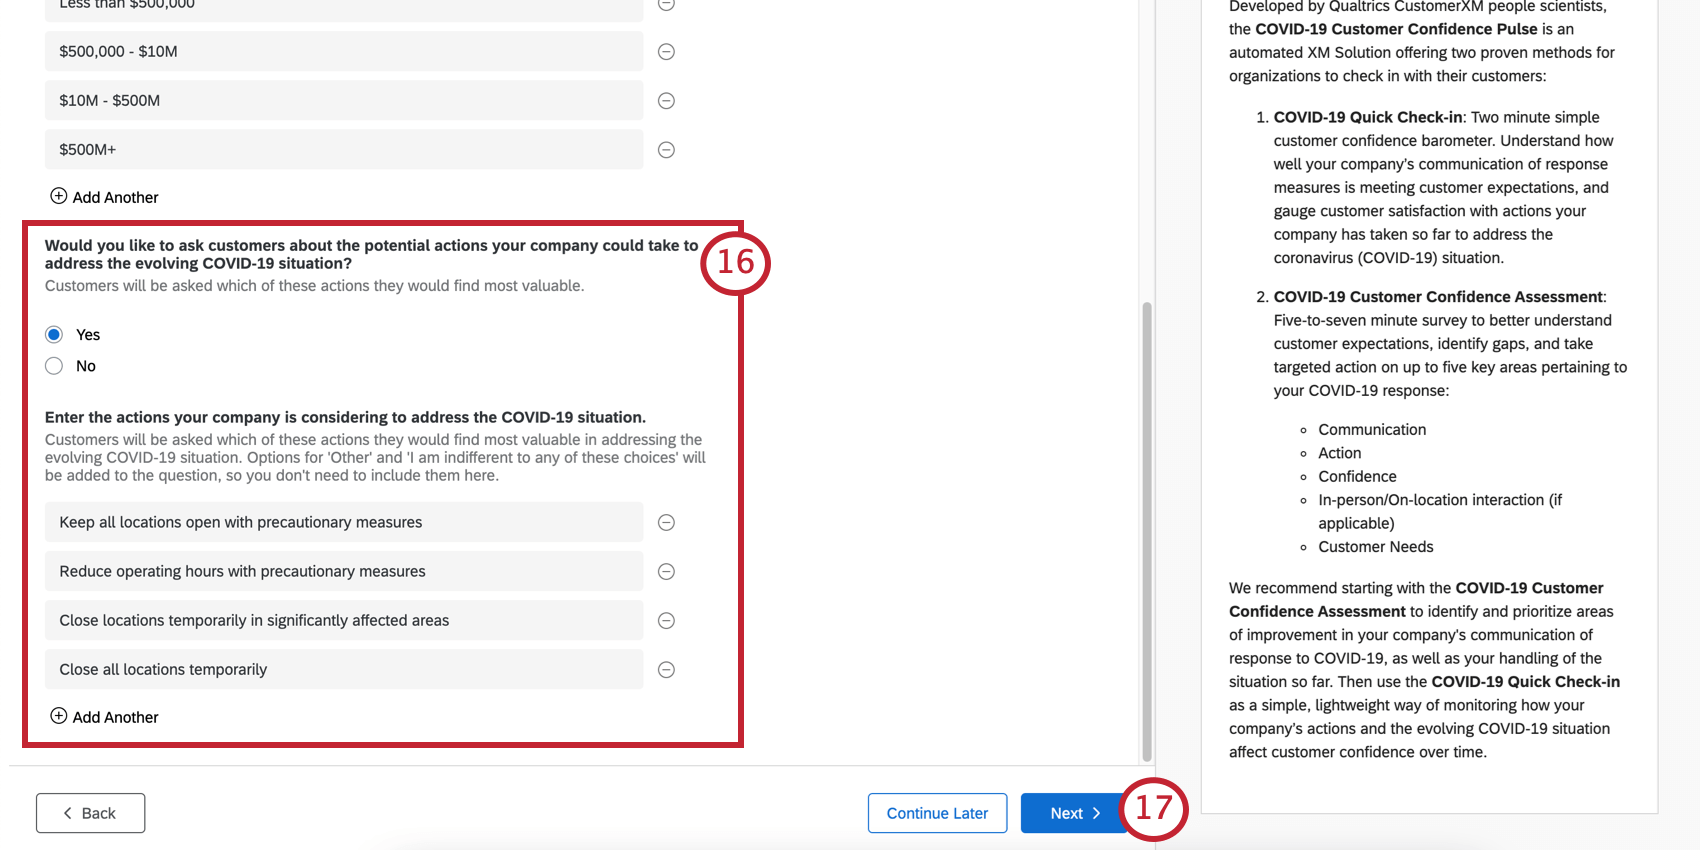 Image of the question described, showing a yes/no question followed by a place where you can enter labels of choice